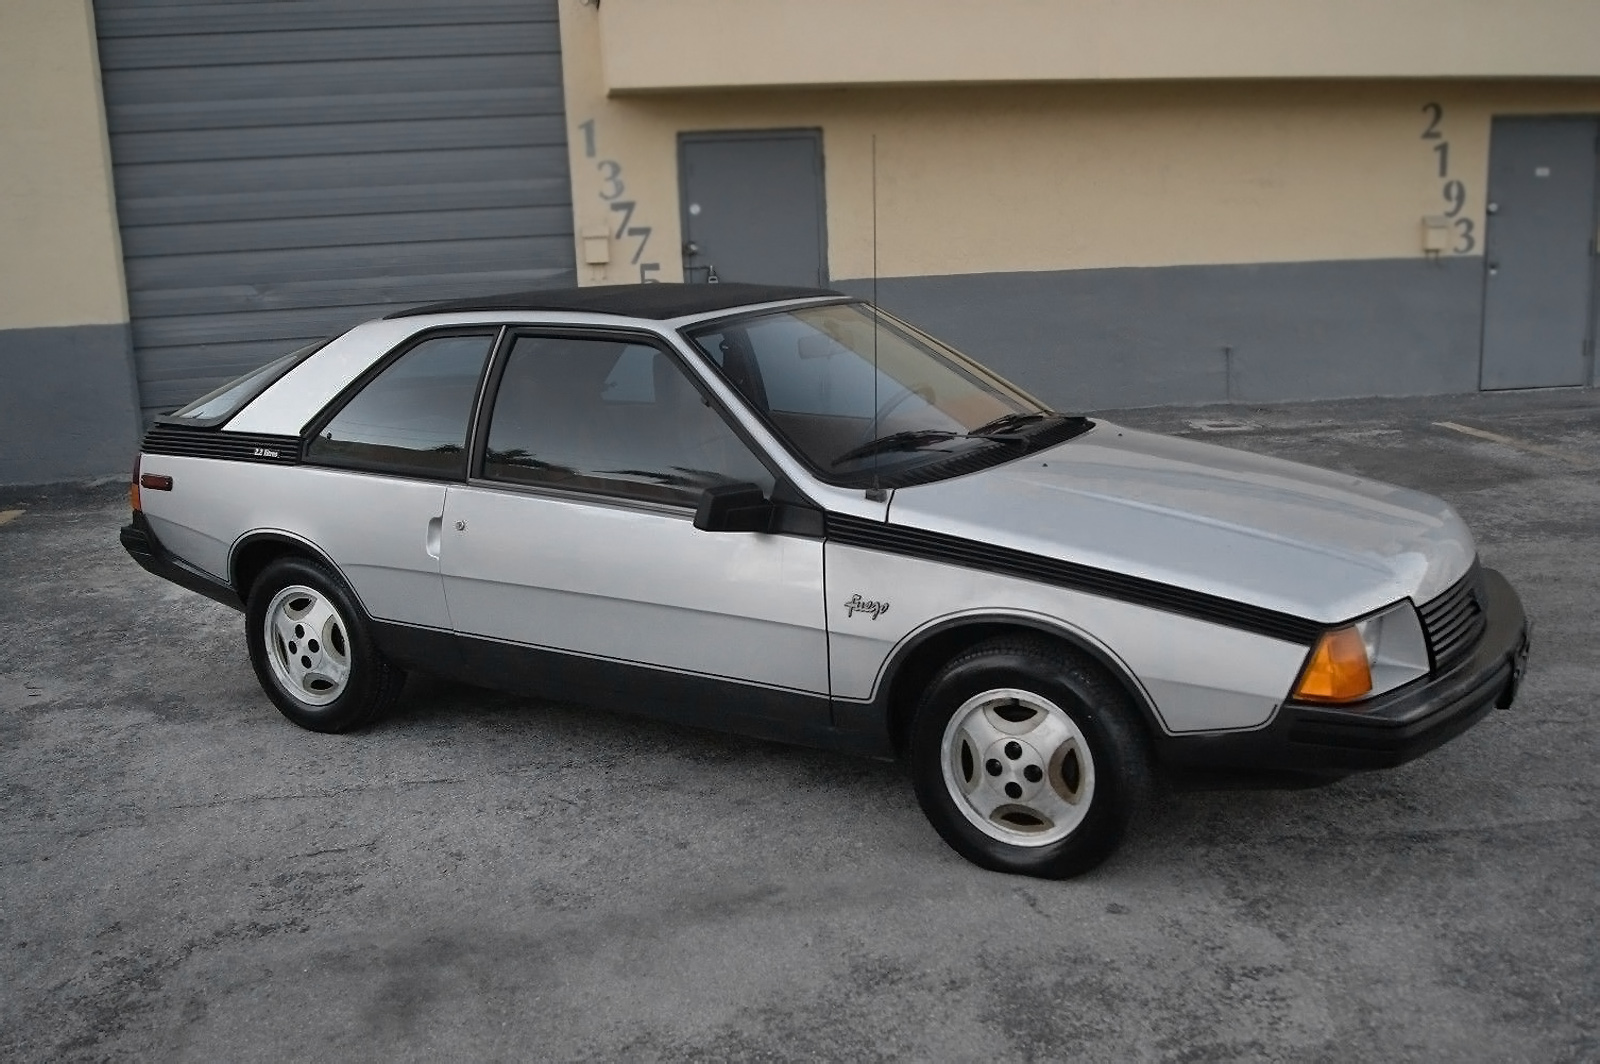 Car Lot For Sale >> Nicest One Left? 1984 Renault Fuego